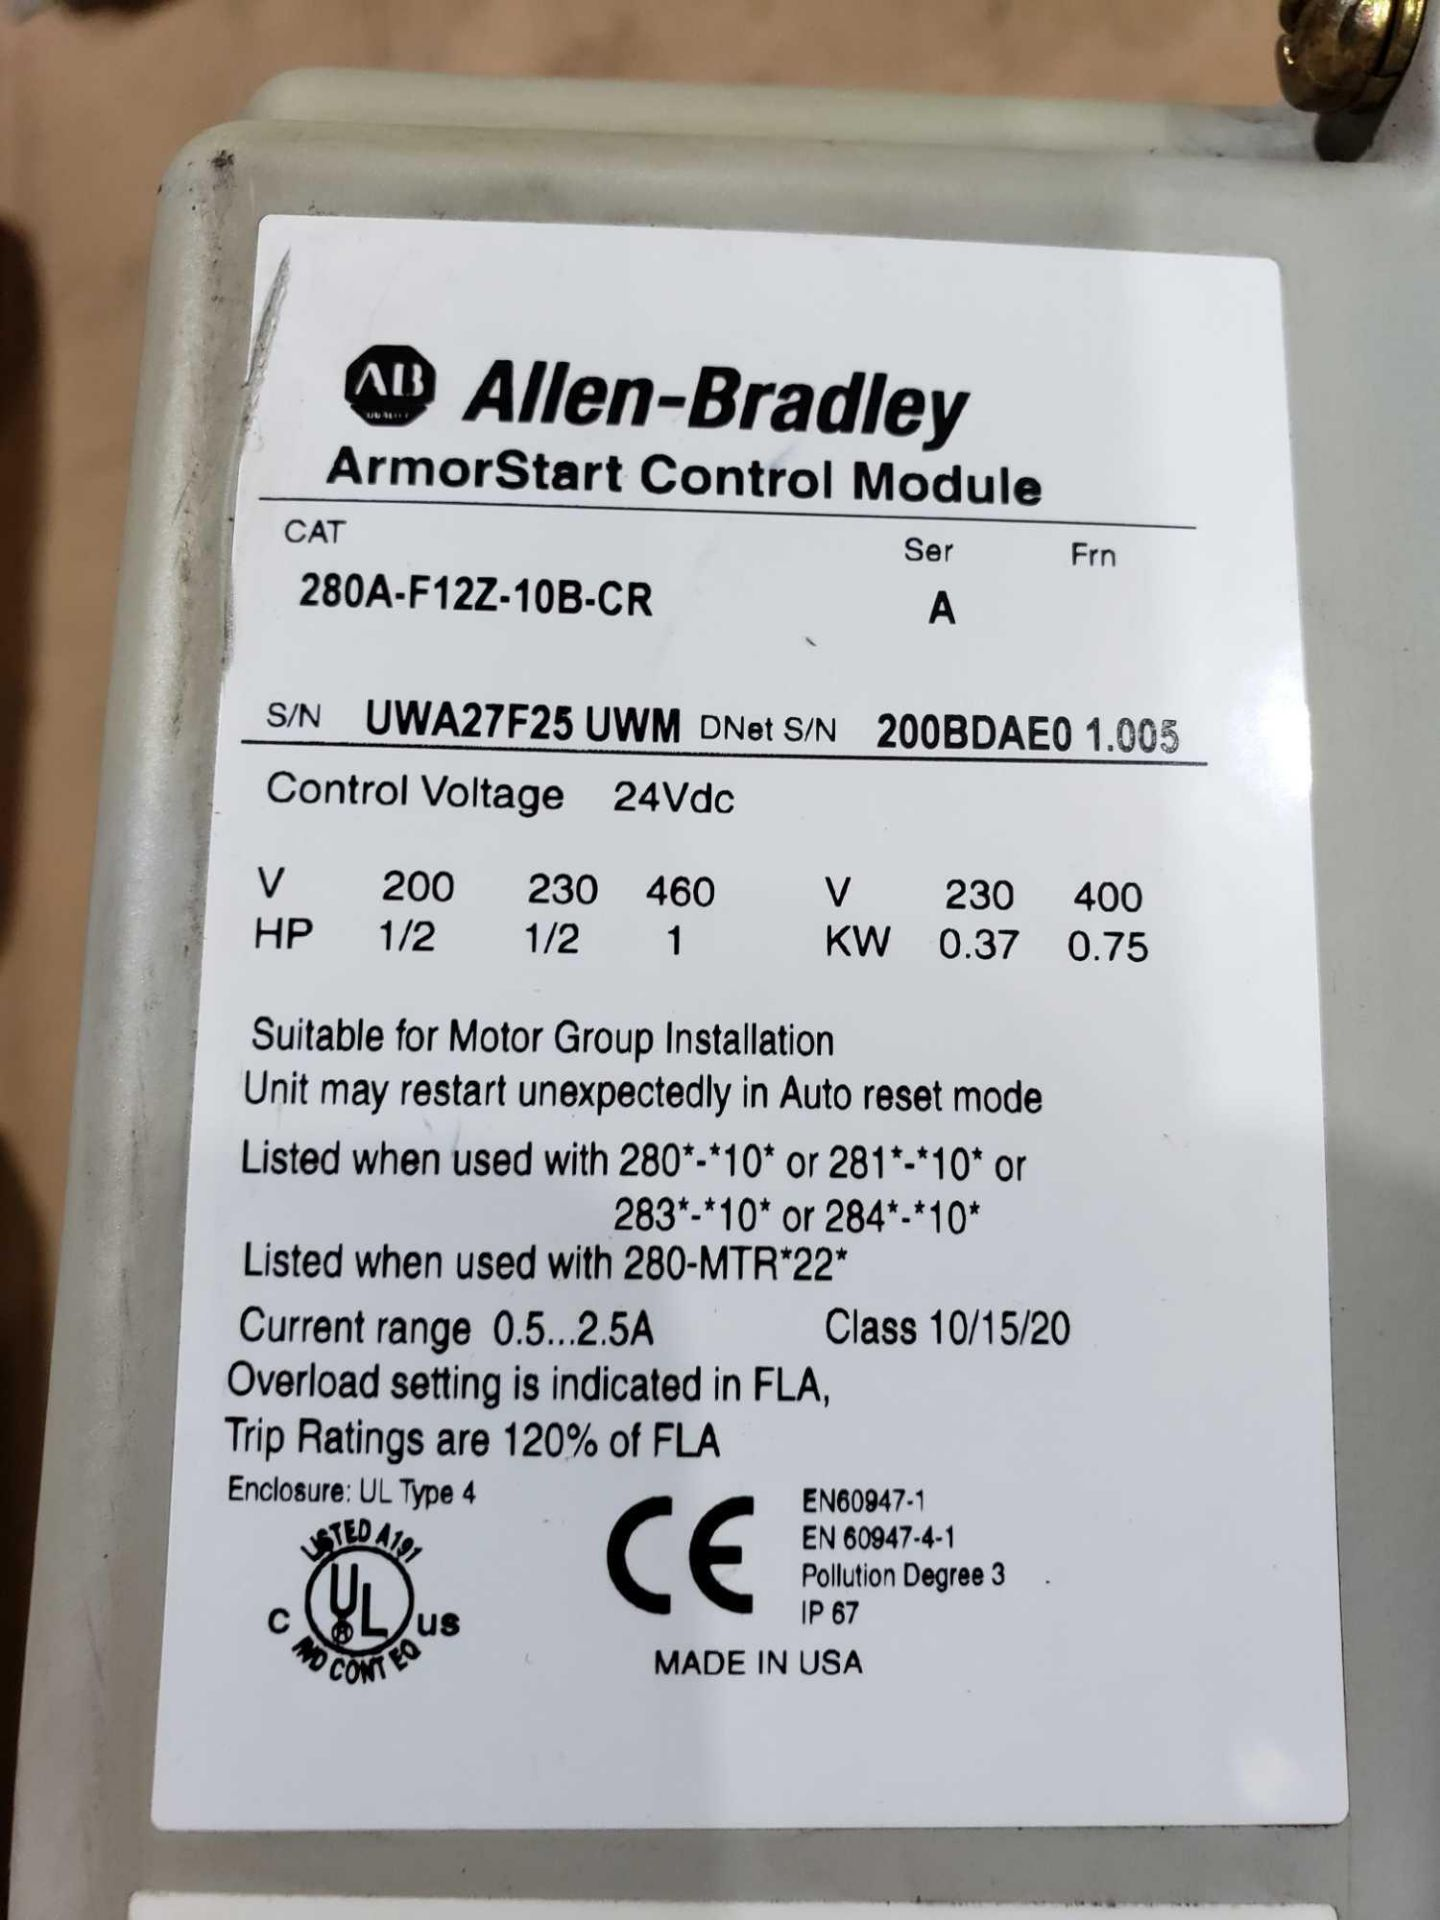 Lot 7 - Allen Bradley Armorstart Catalog 280A-F12Z-10B-CR with base Catalog 280A-F12Z-10B-CR.